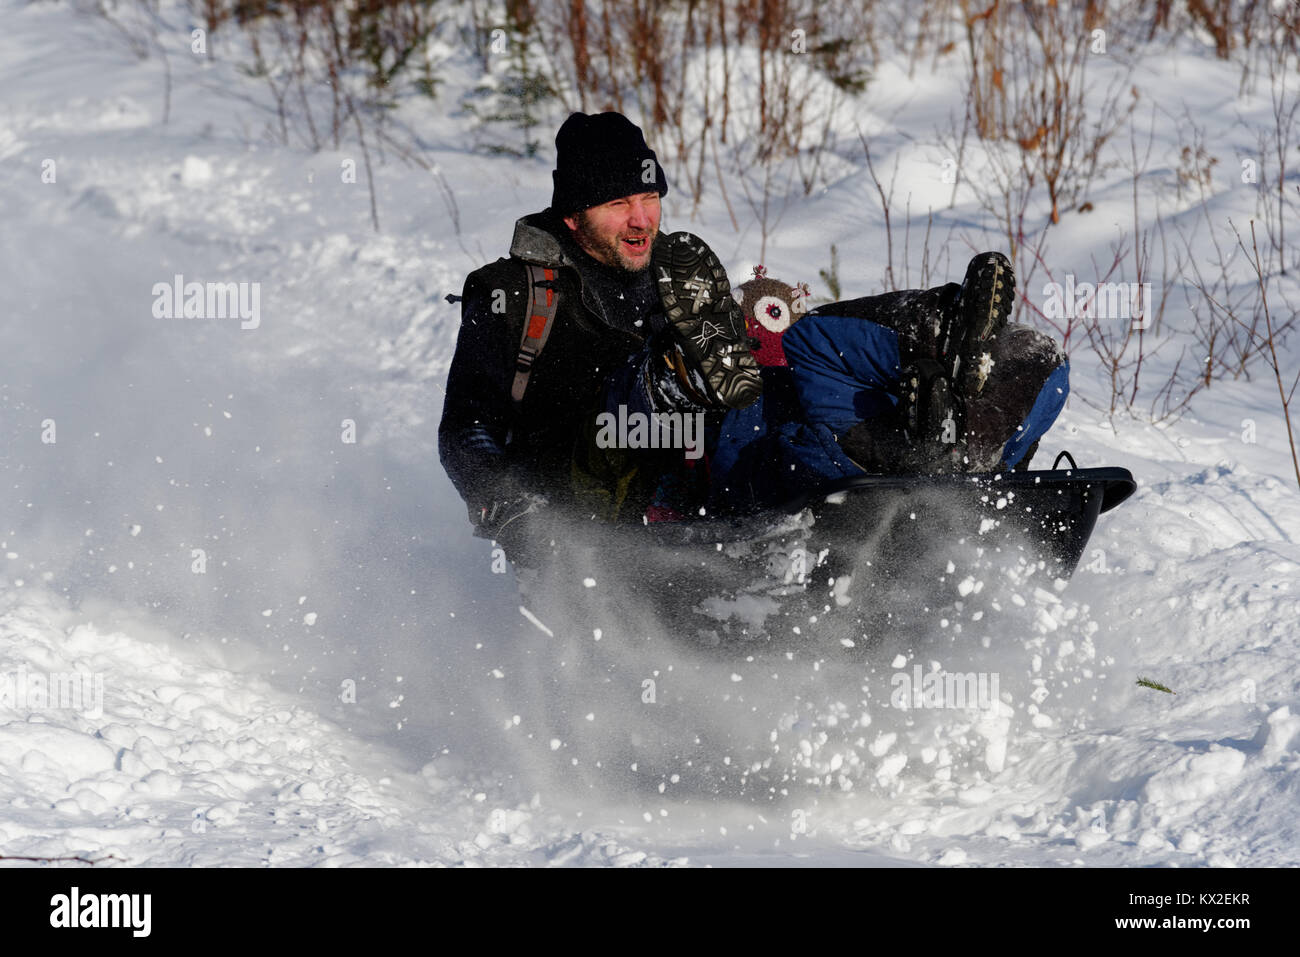 A man in a sledge making a lot of powder snow as he sledges through fresh snow - Stock Image